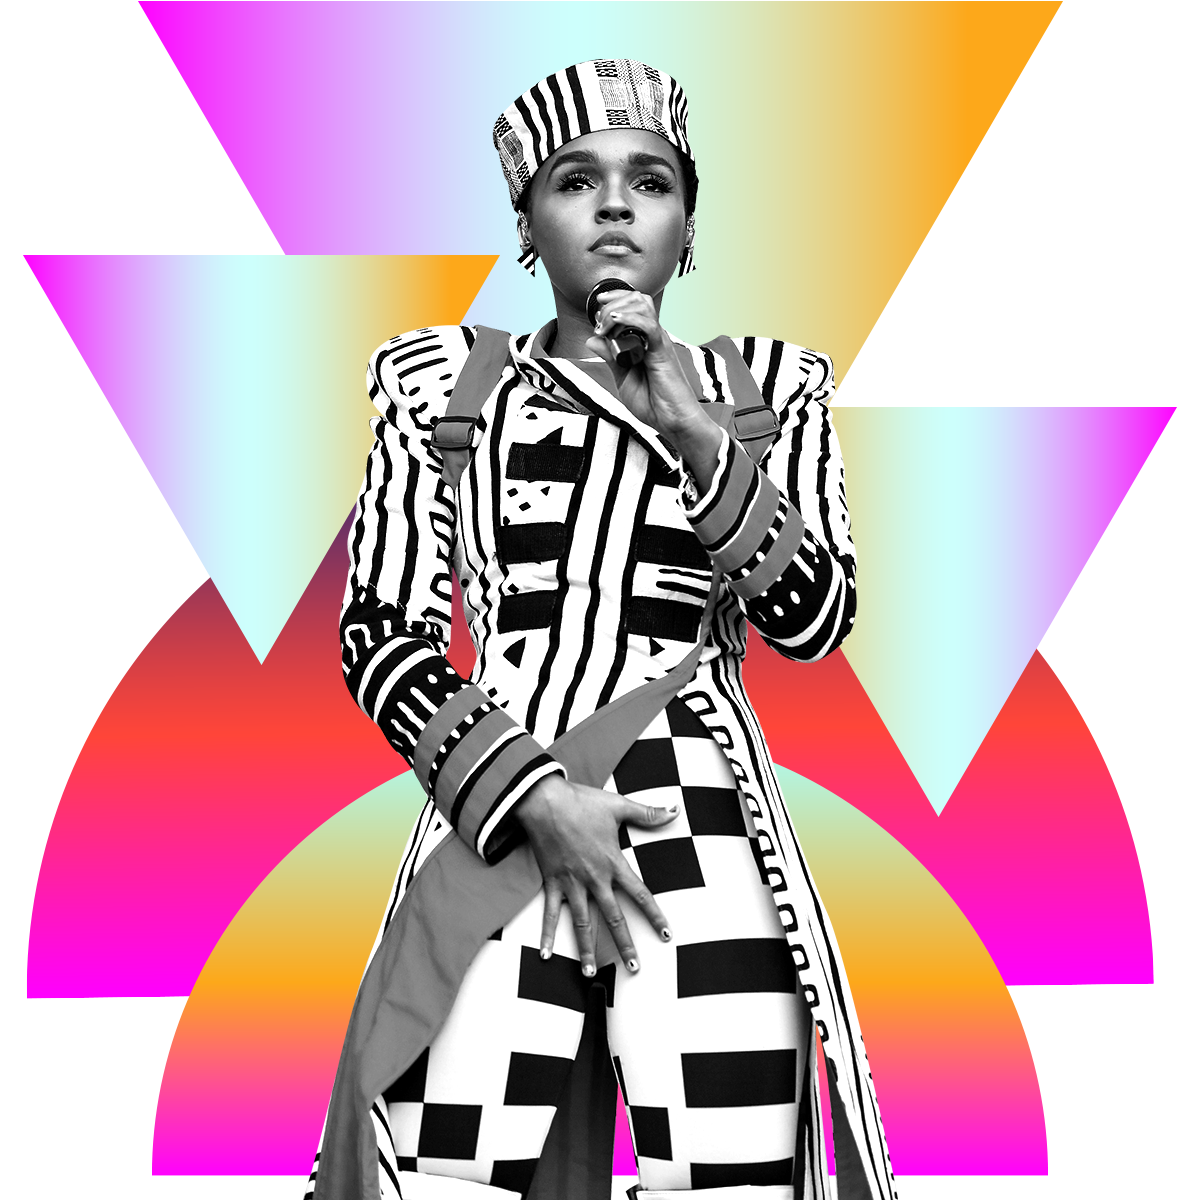 Photo illustration of Janelle Monáe in black and white surrounded by colored gradients